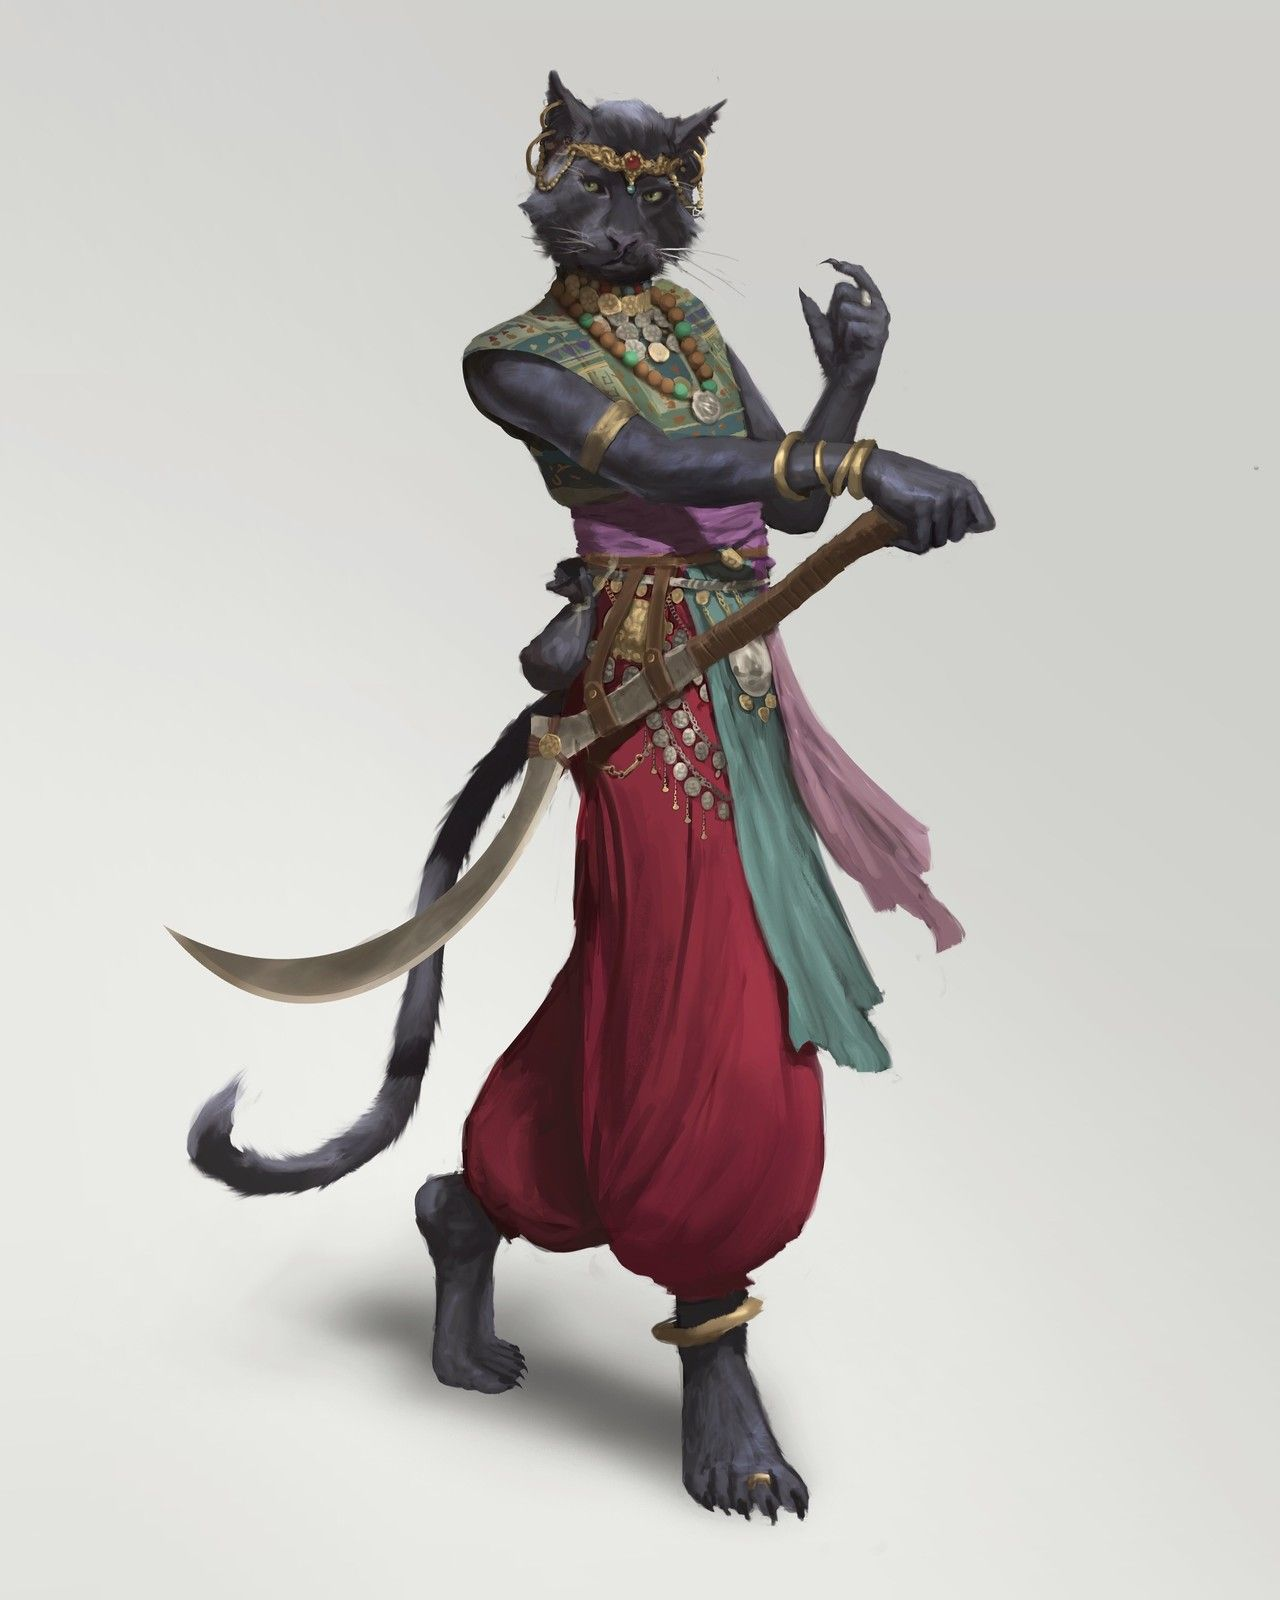 Tabaxi Monk Nathanael James On Artstation At Https Www Artstation Com Artwork Vezvb Dungeons And Dragons Characters Dnd Characters Character Art A subreddit dedicated to the various iterations of dungeons & dragons, from its first edition roots to its fifth. dungeons and dragons characters dnd